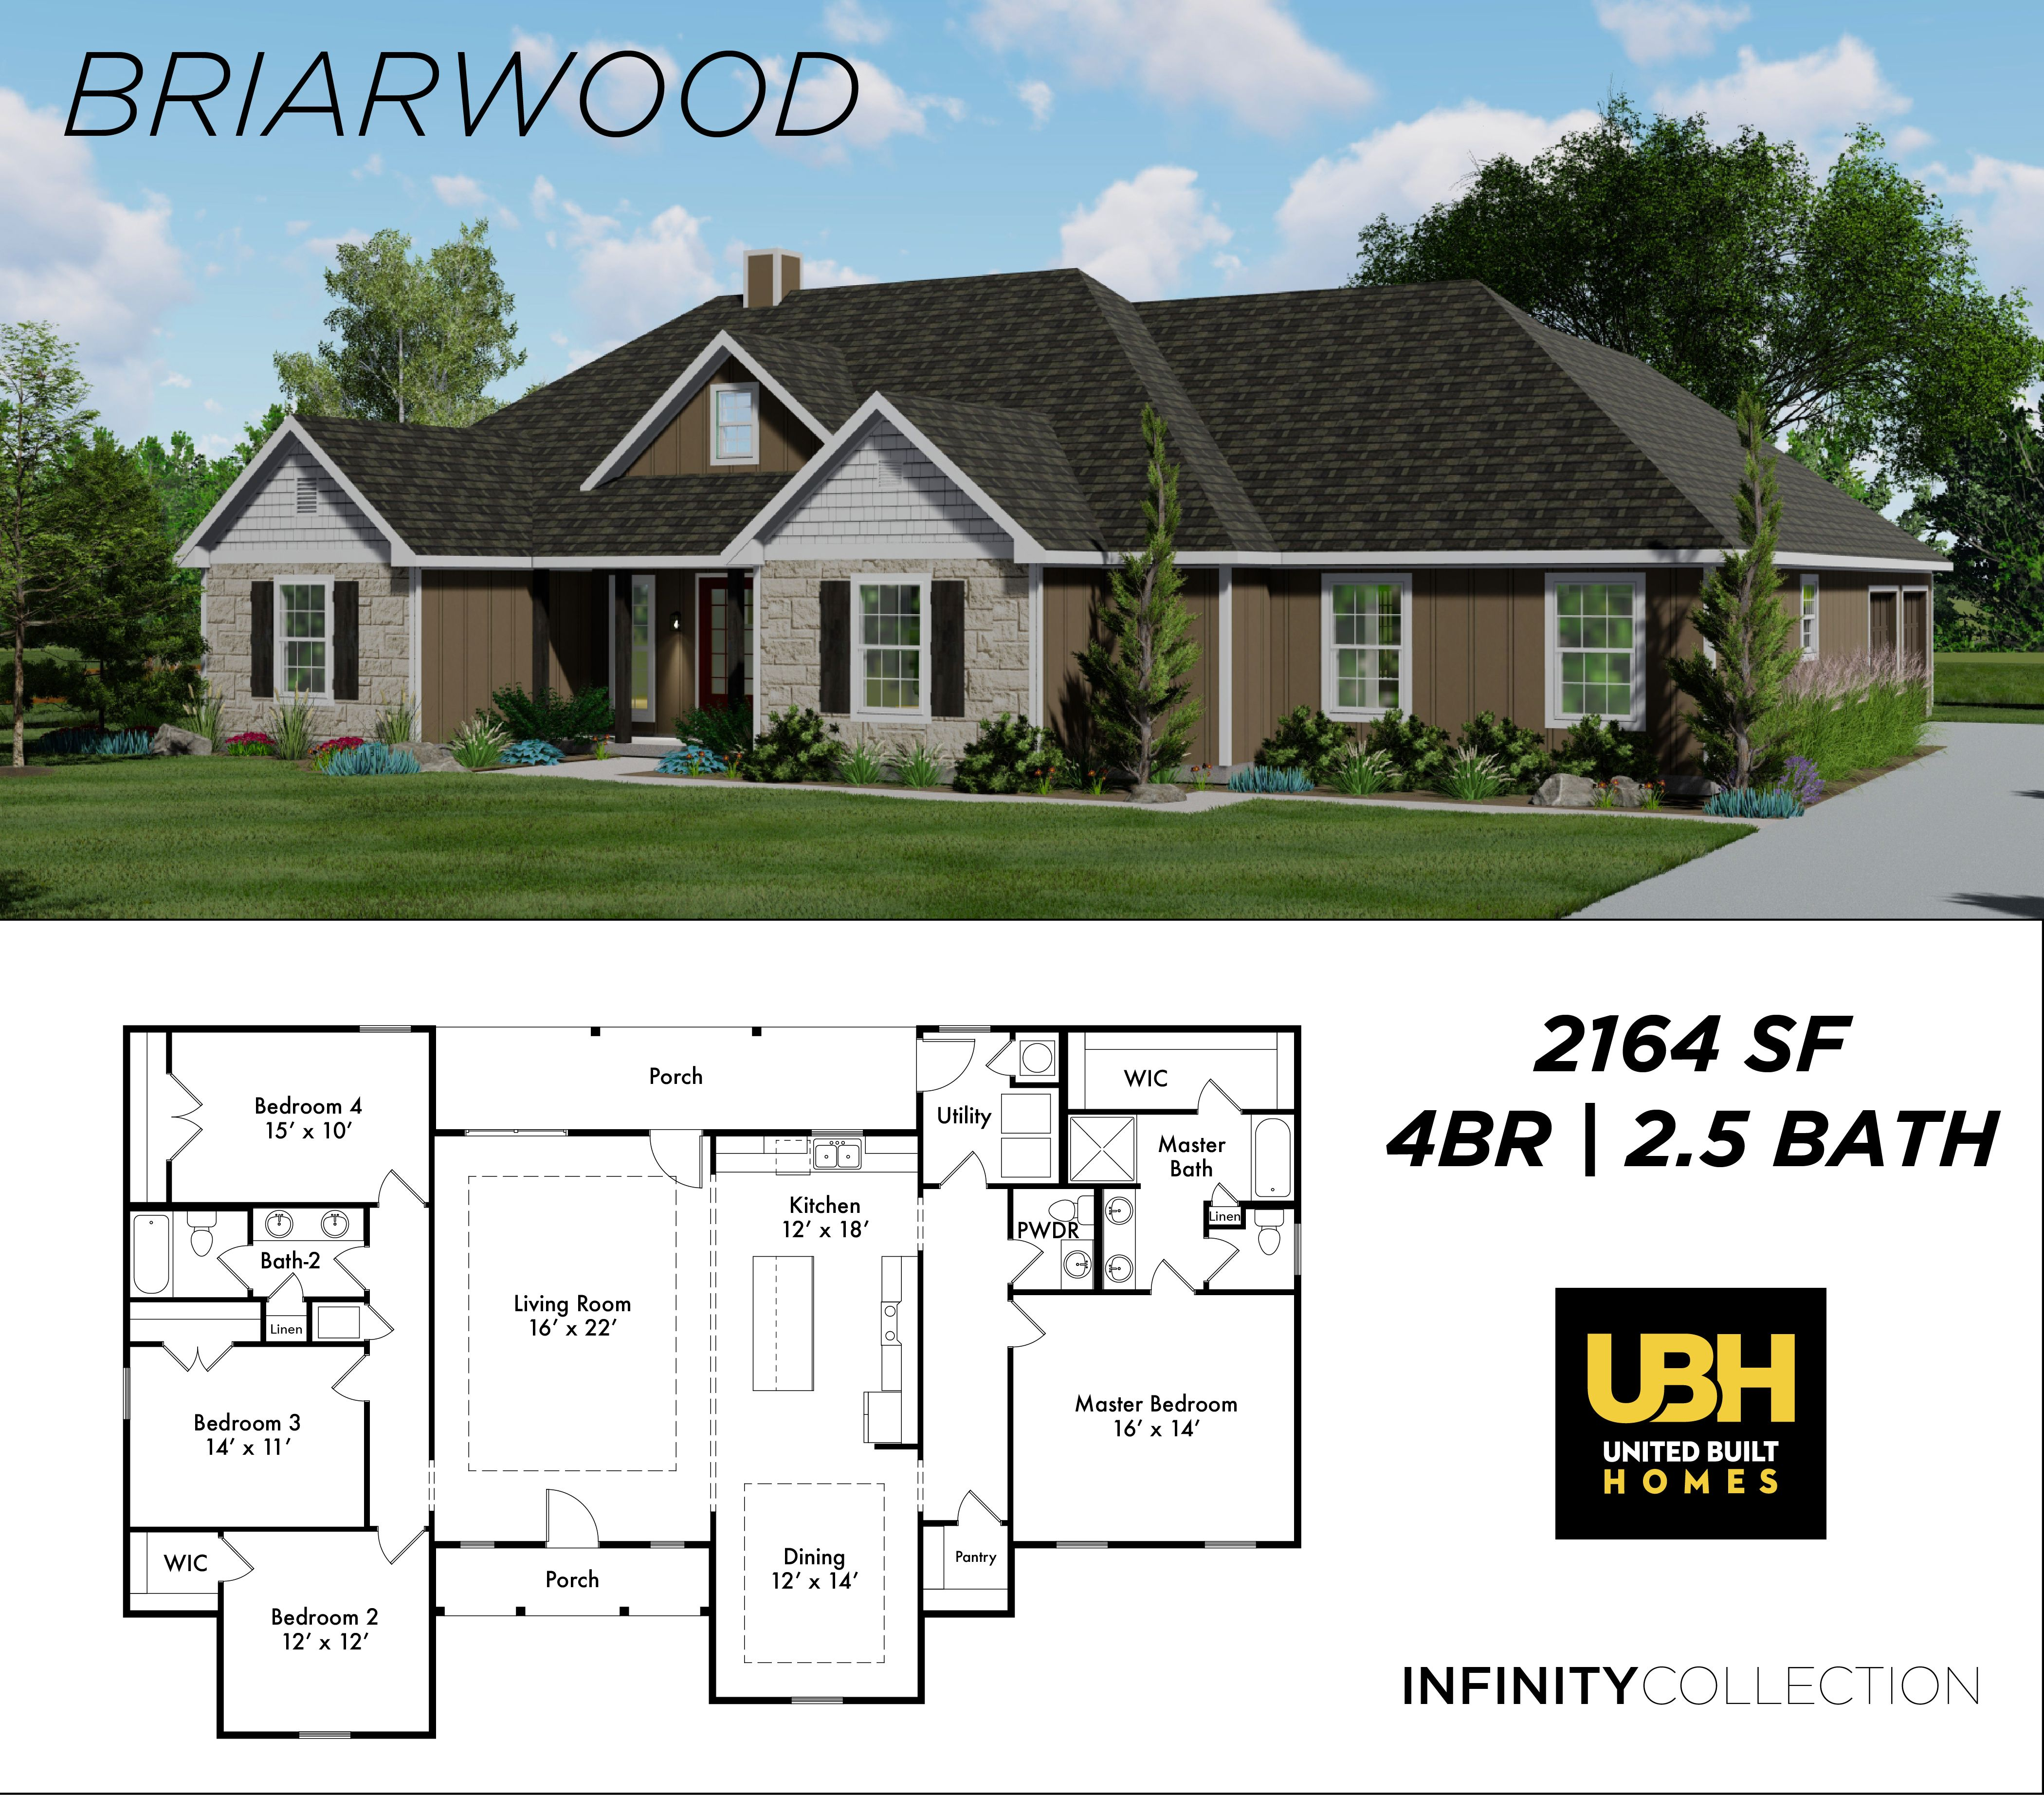 Our Briarwood Is A Beautiful 4bd 2 5 Bath Plan In Our New Infinity Collection Choose This Plan In The Style You Love Briarwood Custom Built Homes House Plans